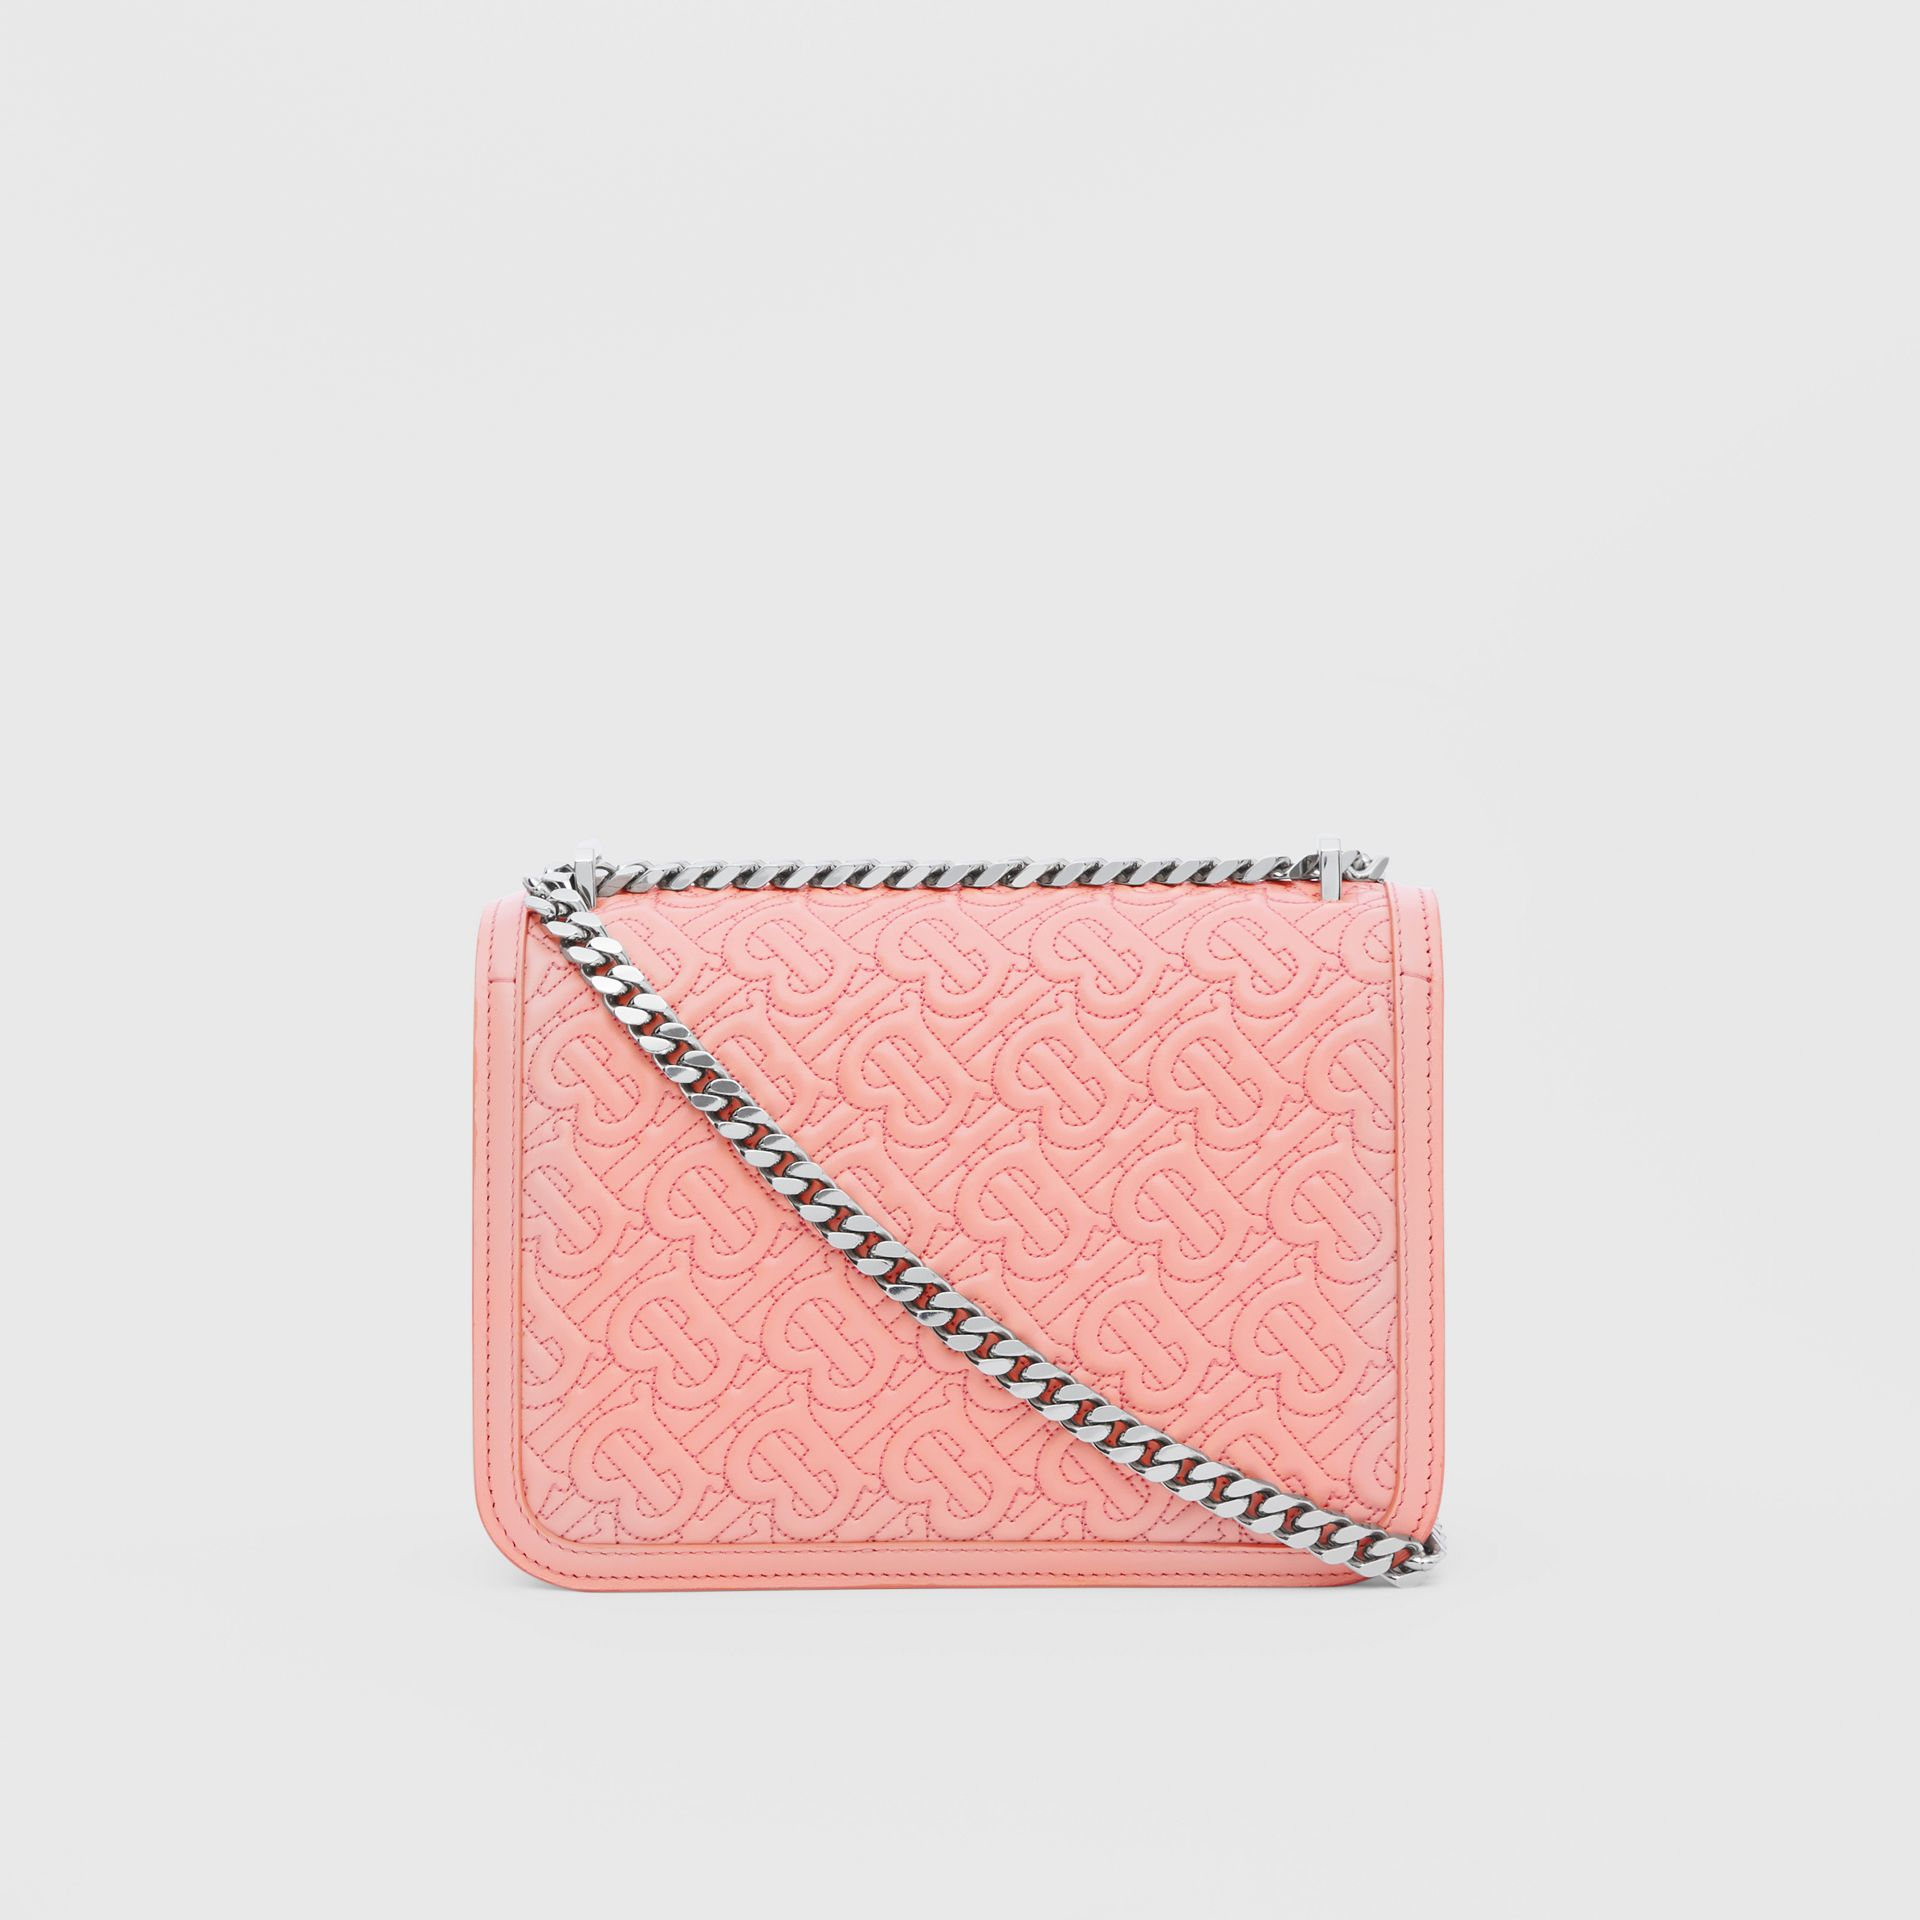 Small Quilted Monogram Lambskin TB Bag in Blush Pink - Women | Burberry - gallery image 7